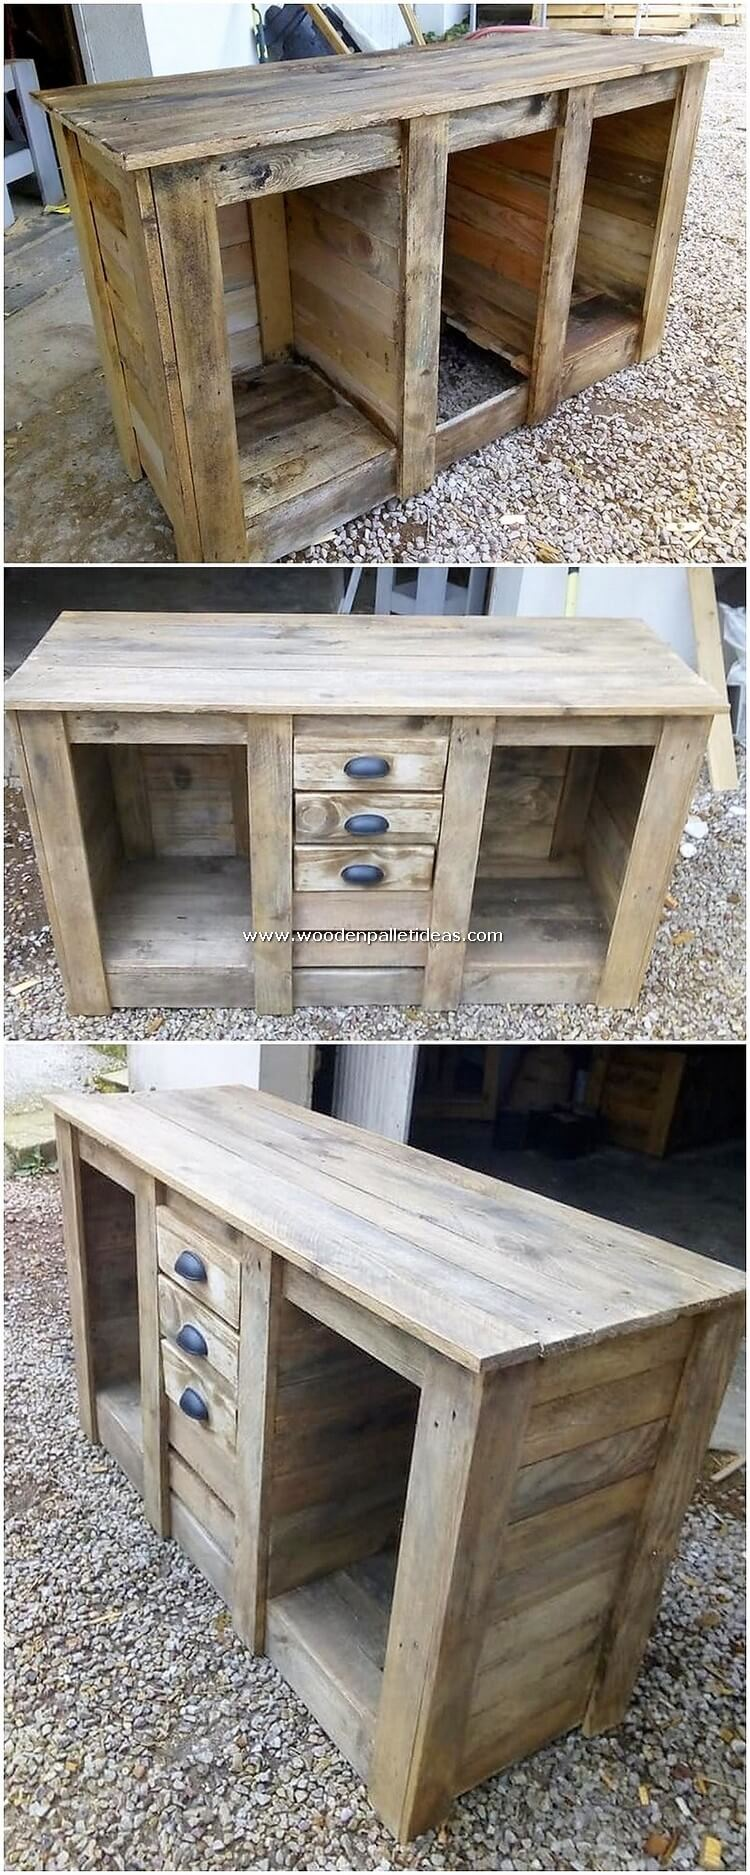 DIY Pallet Table with Drawers